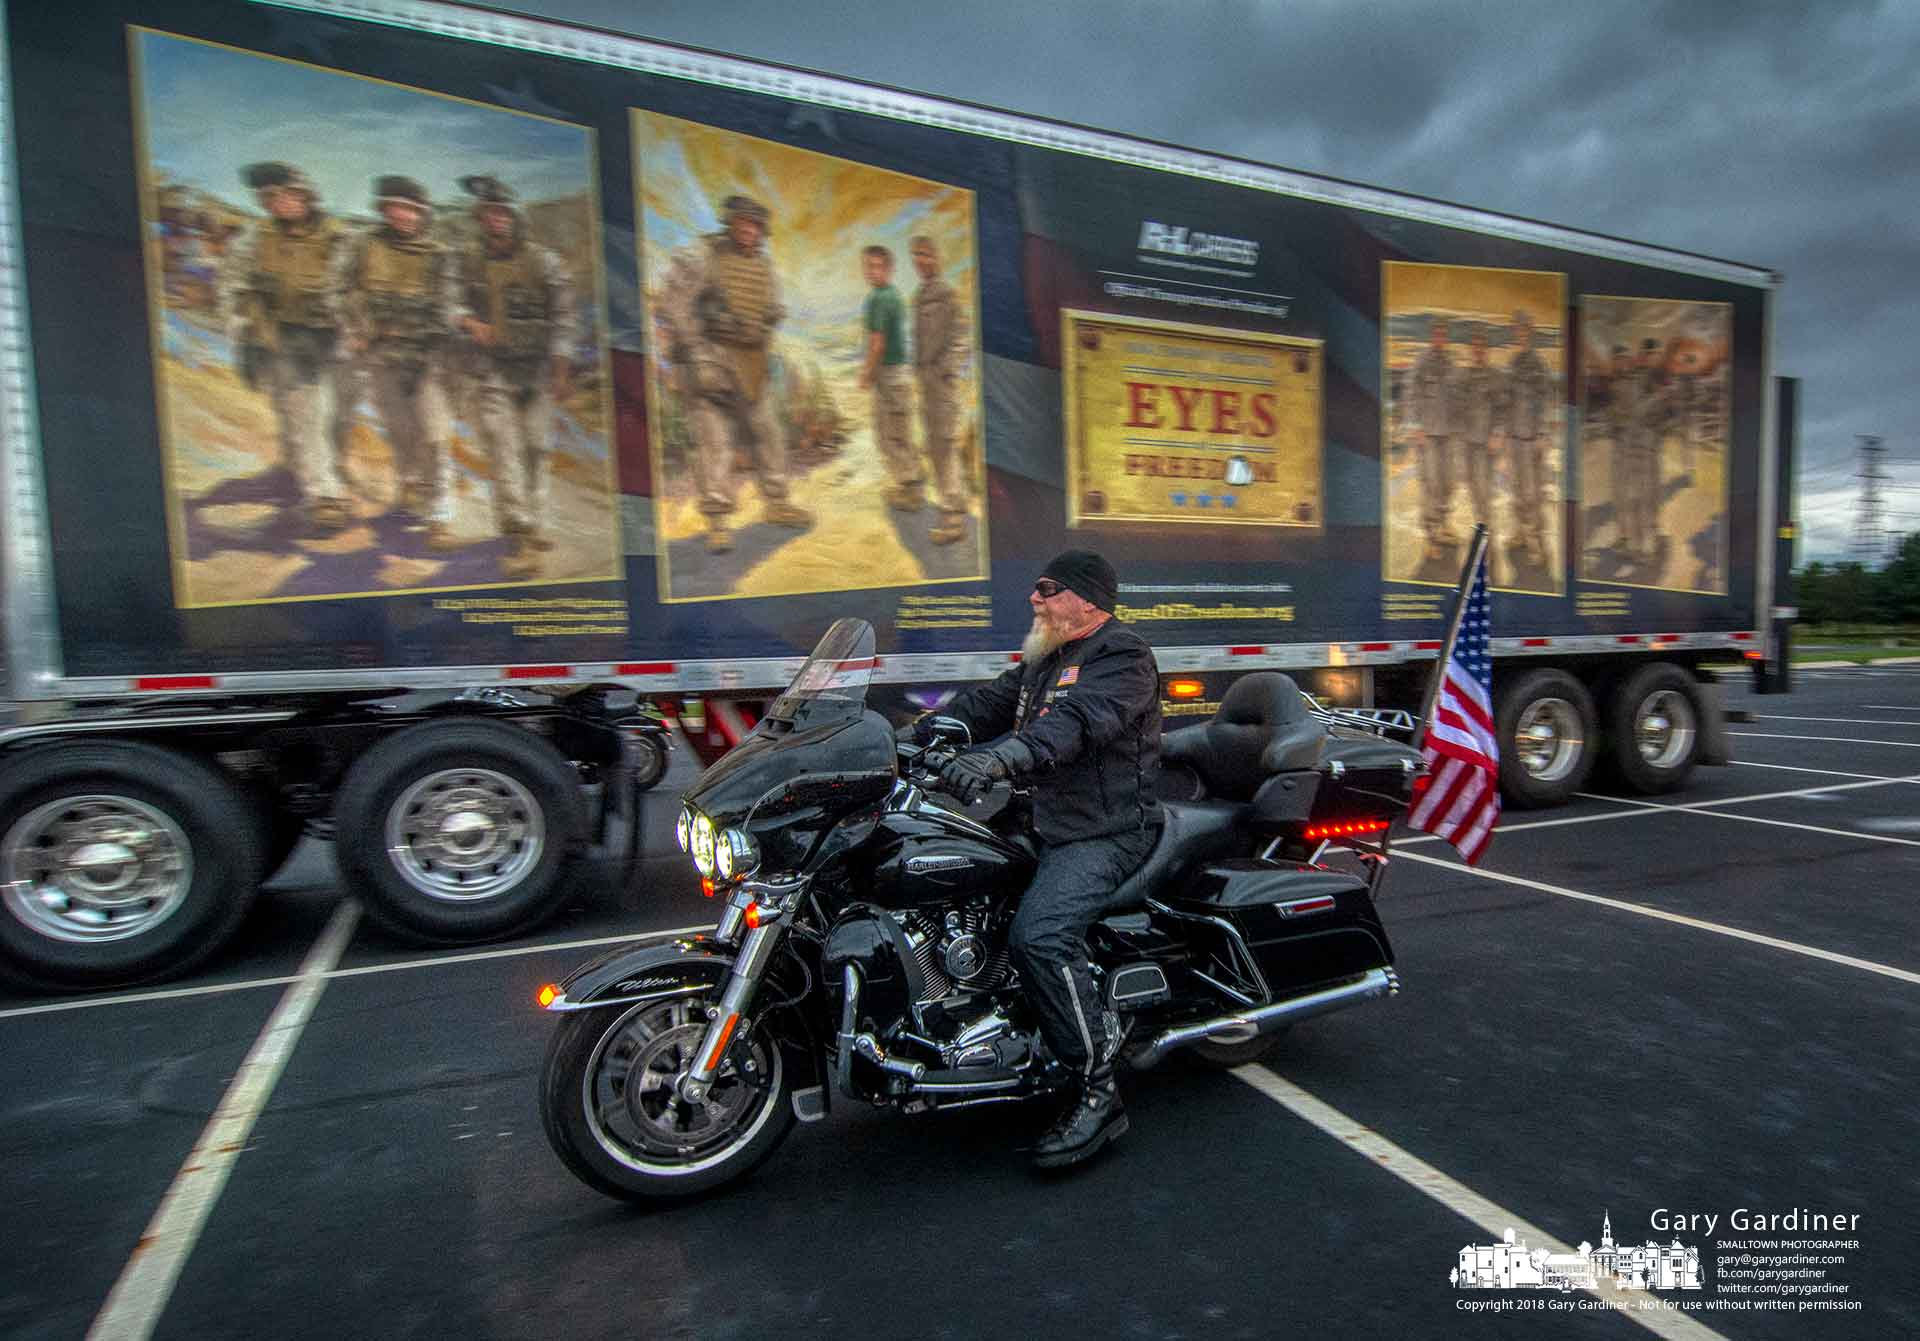 A motorcyclist rides past the Eyes of Freedom trailer as he and about 100 other riders gather for a motorcade to take the Lima Company Memorial for display at the Circleville Pumpkin Show. My Final Photo for Oct. 15, 2018.